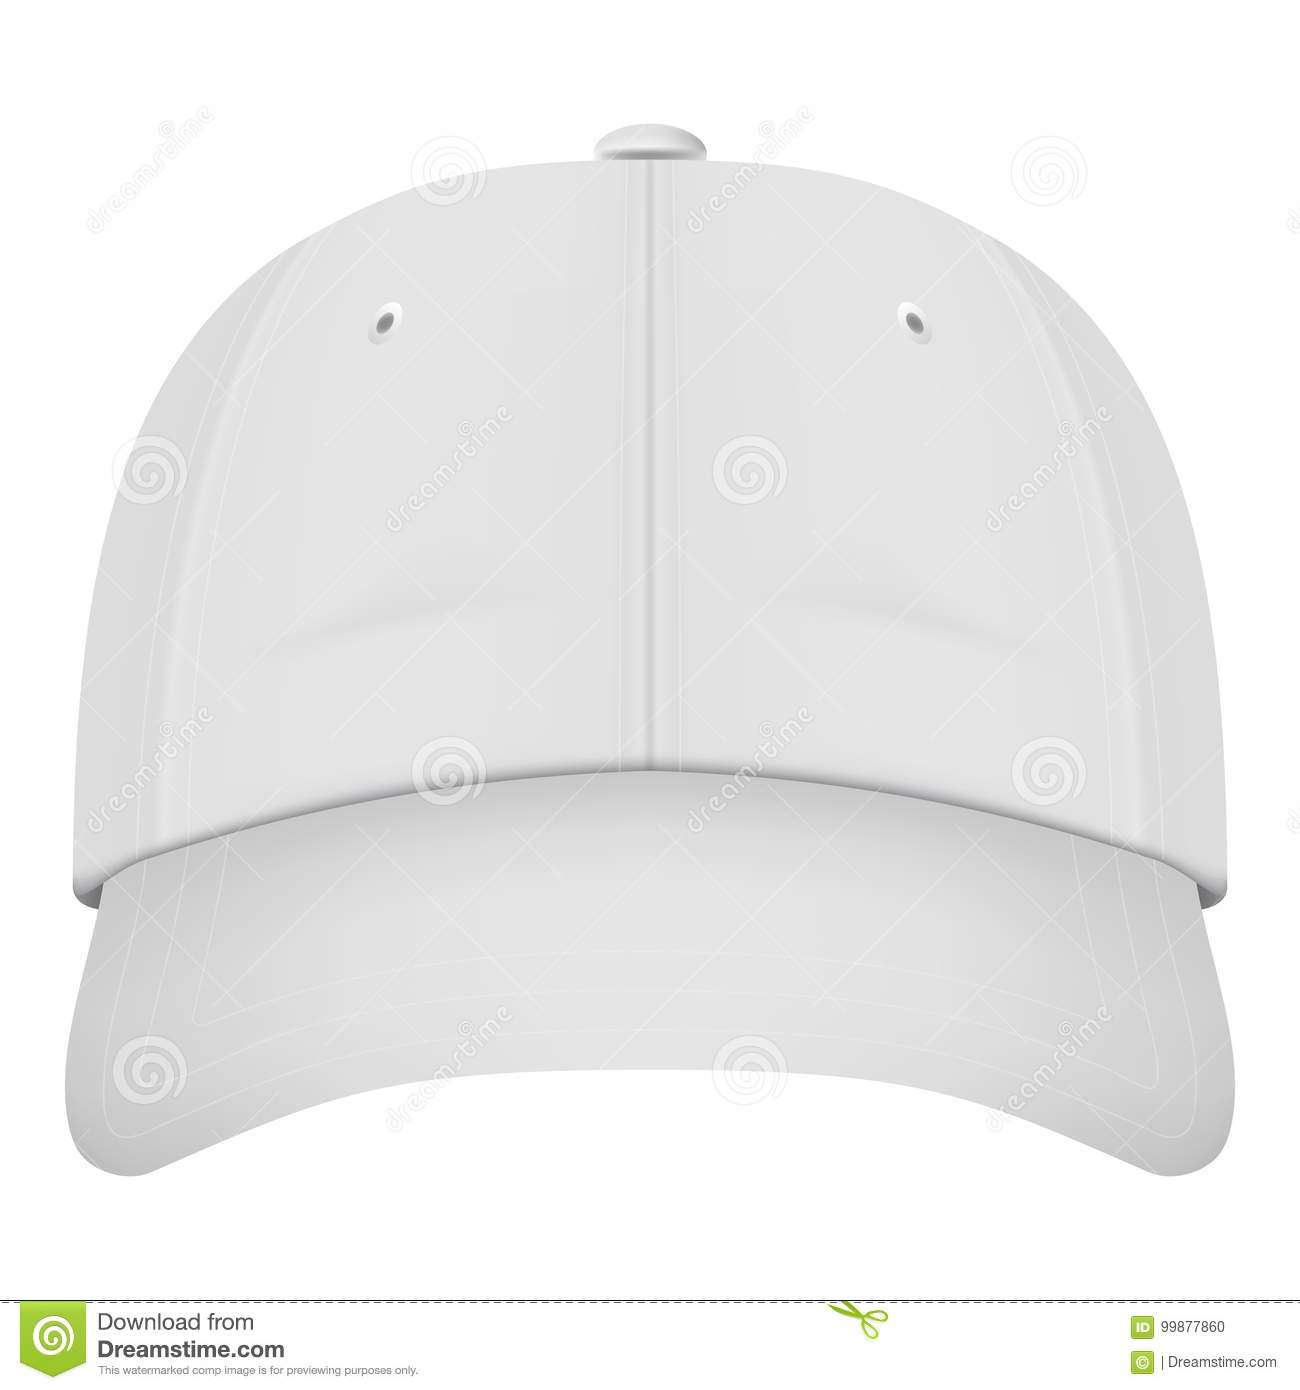 943c21df01c Realistic Front View White Baseball Cap Isolated On A White Background.  Vector Illustration.